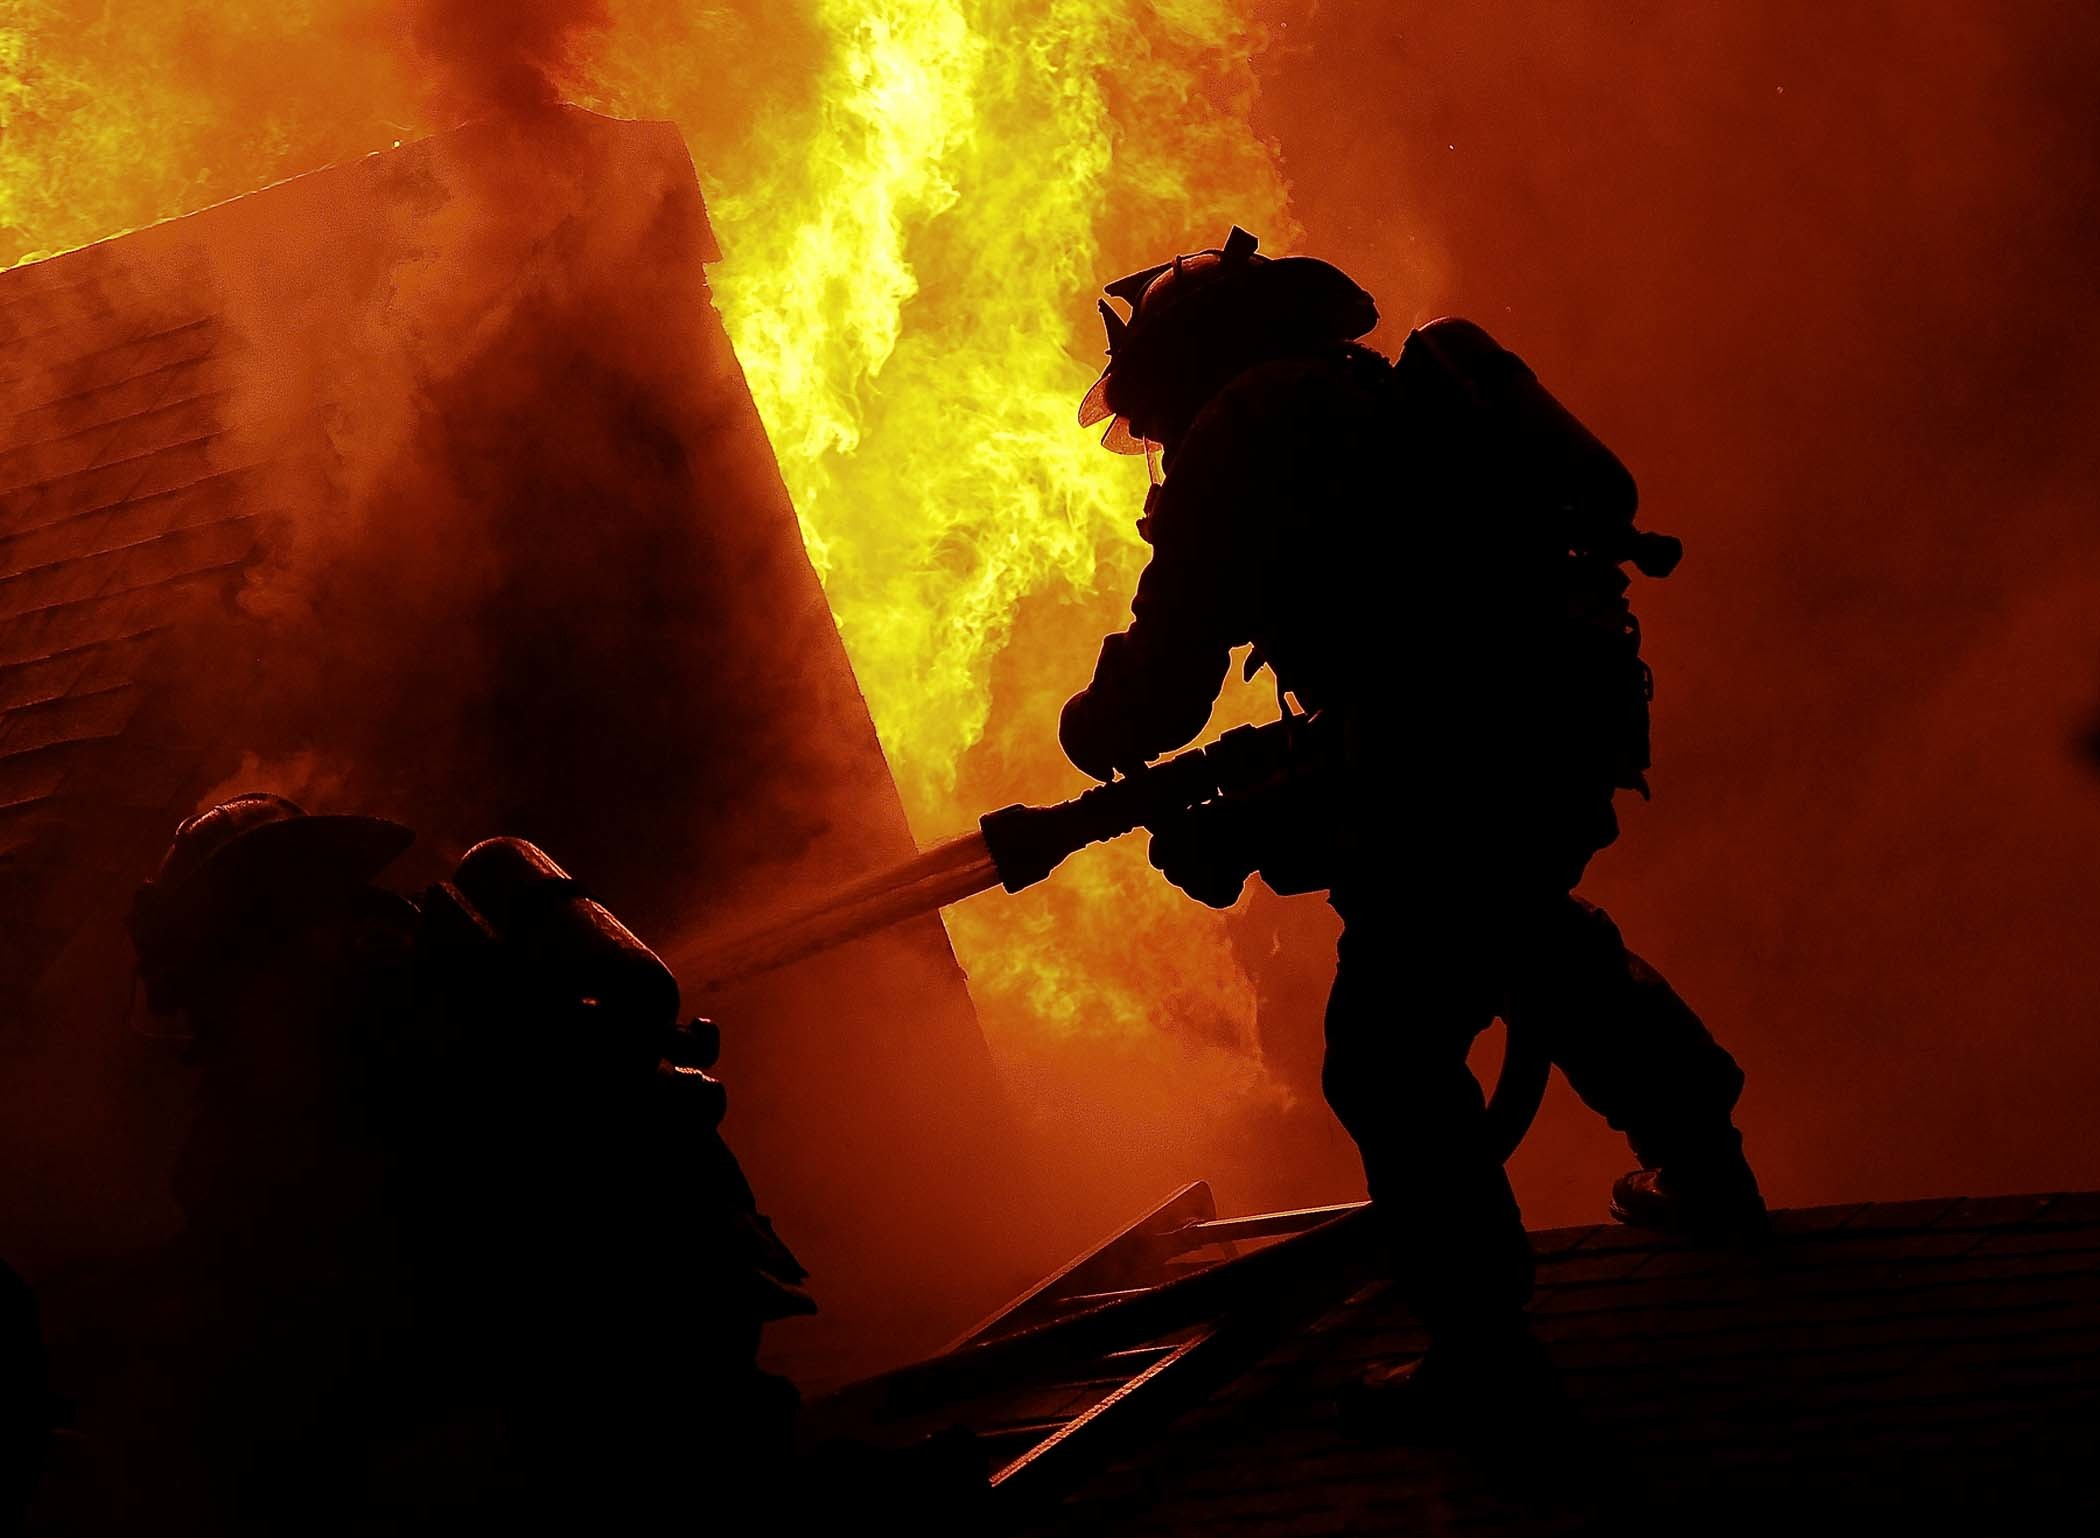 Firefighter Wallpaper For Computer #4